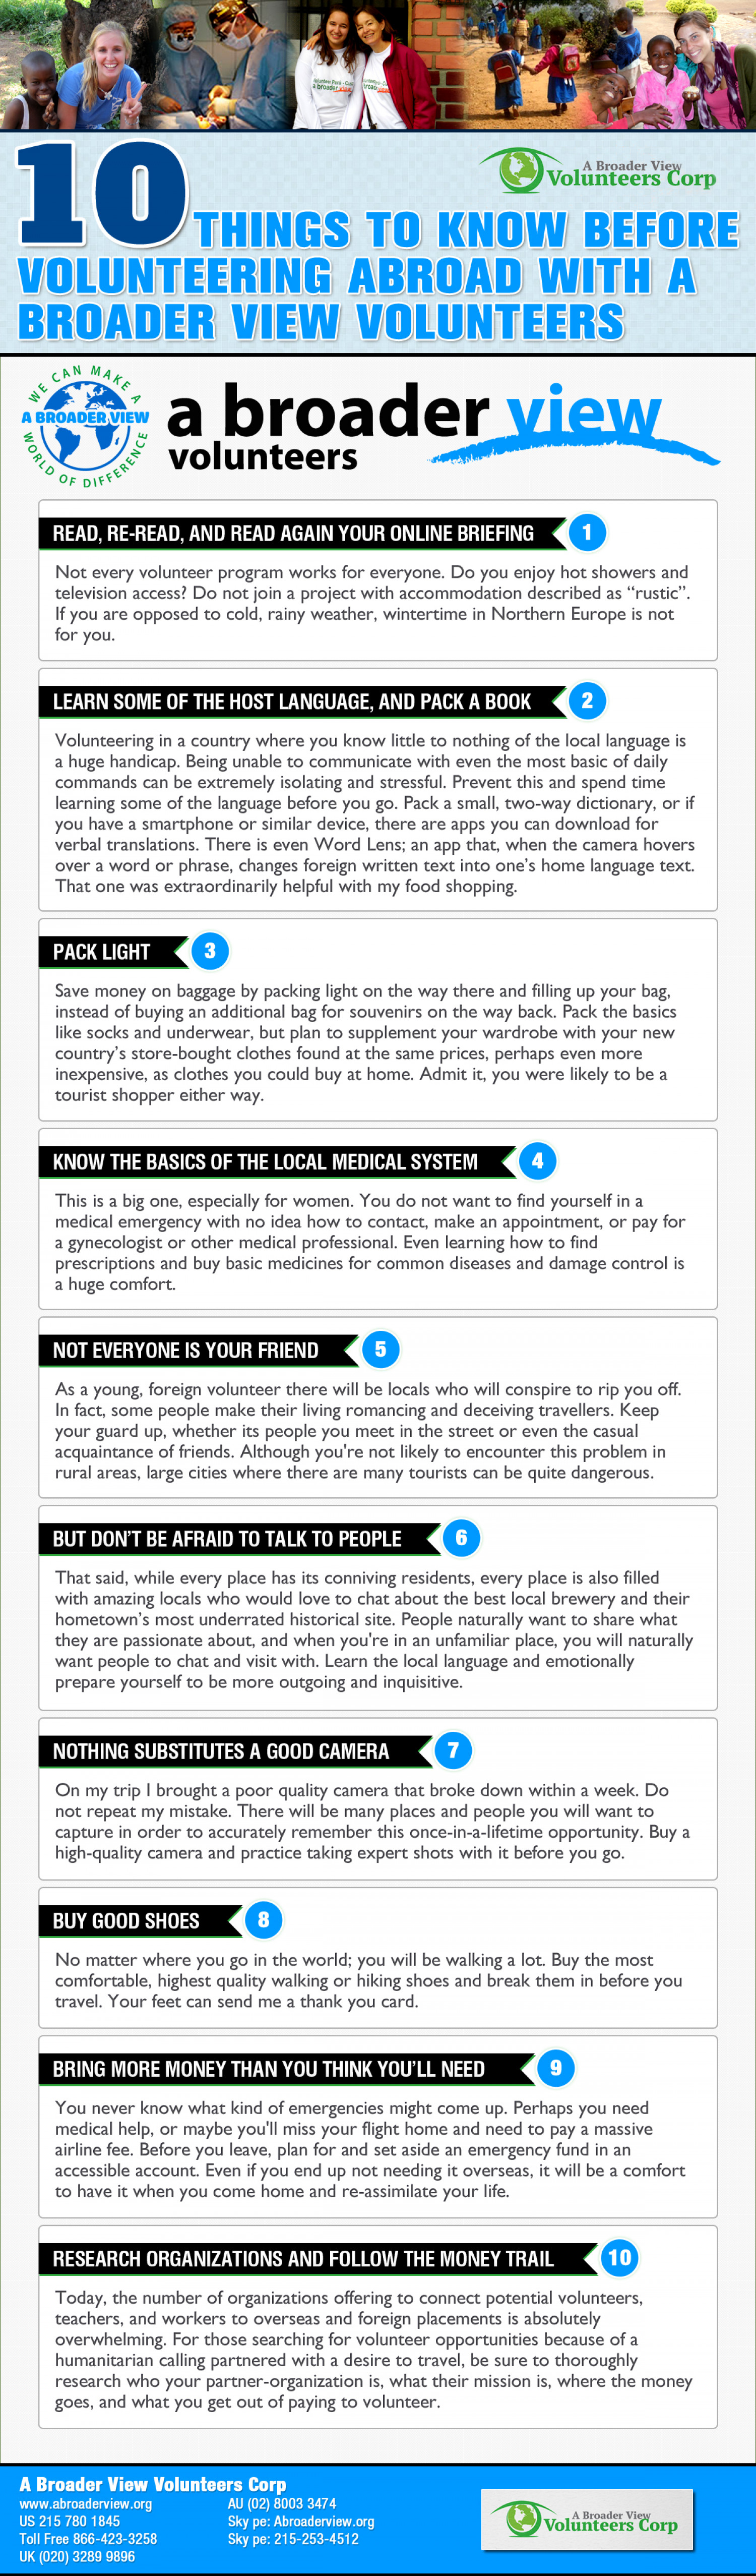 10 Things to Know Before Volunteering Abroad with A Broader View Volunteers Infographic